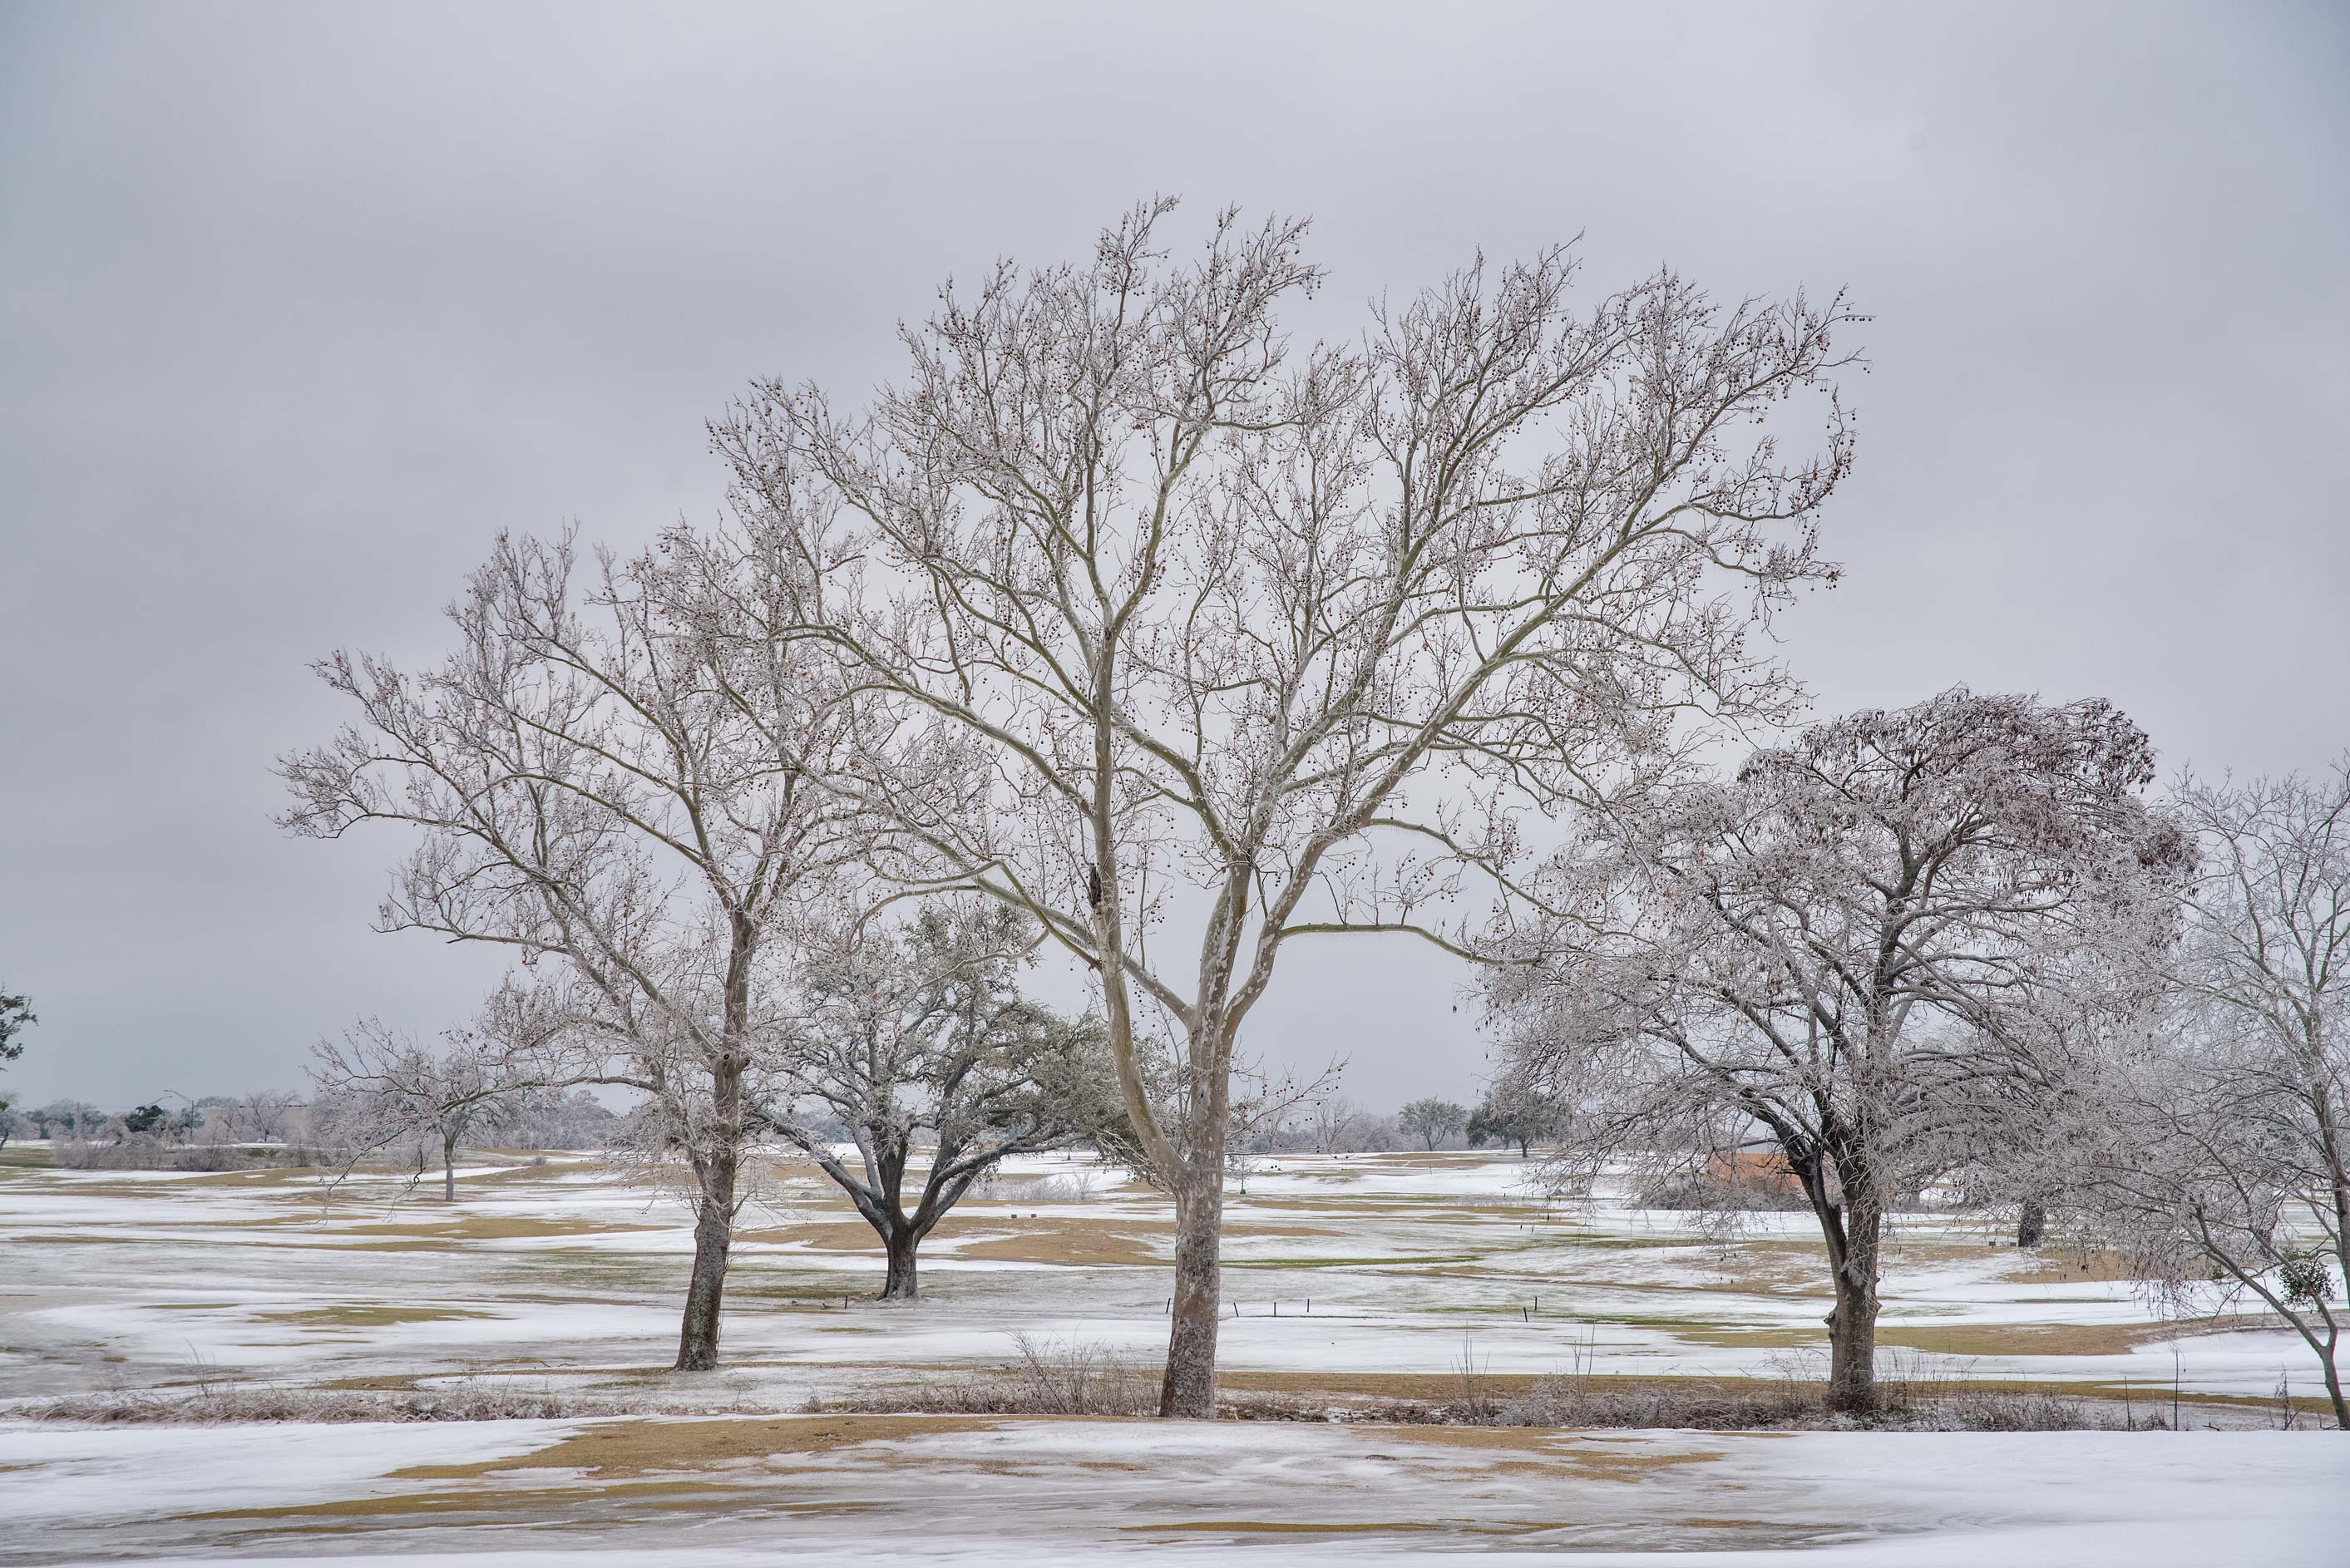 Sycamore trees on a golf course on campus of...M University. College Station, Texas